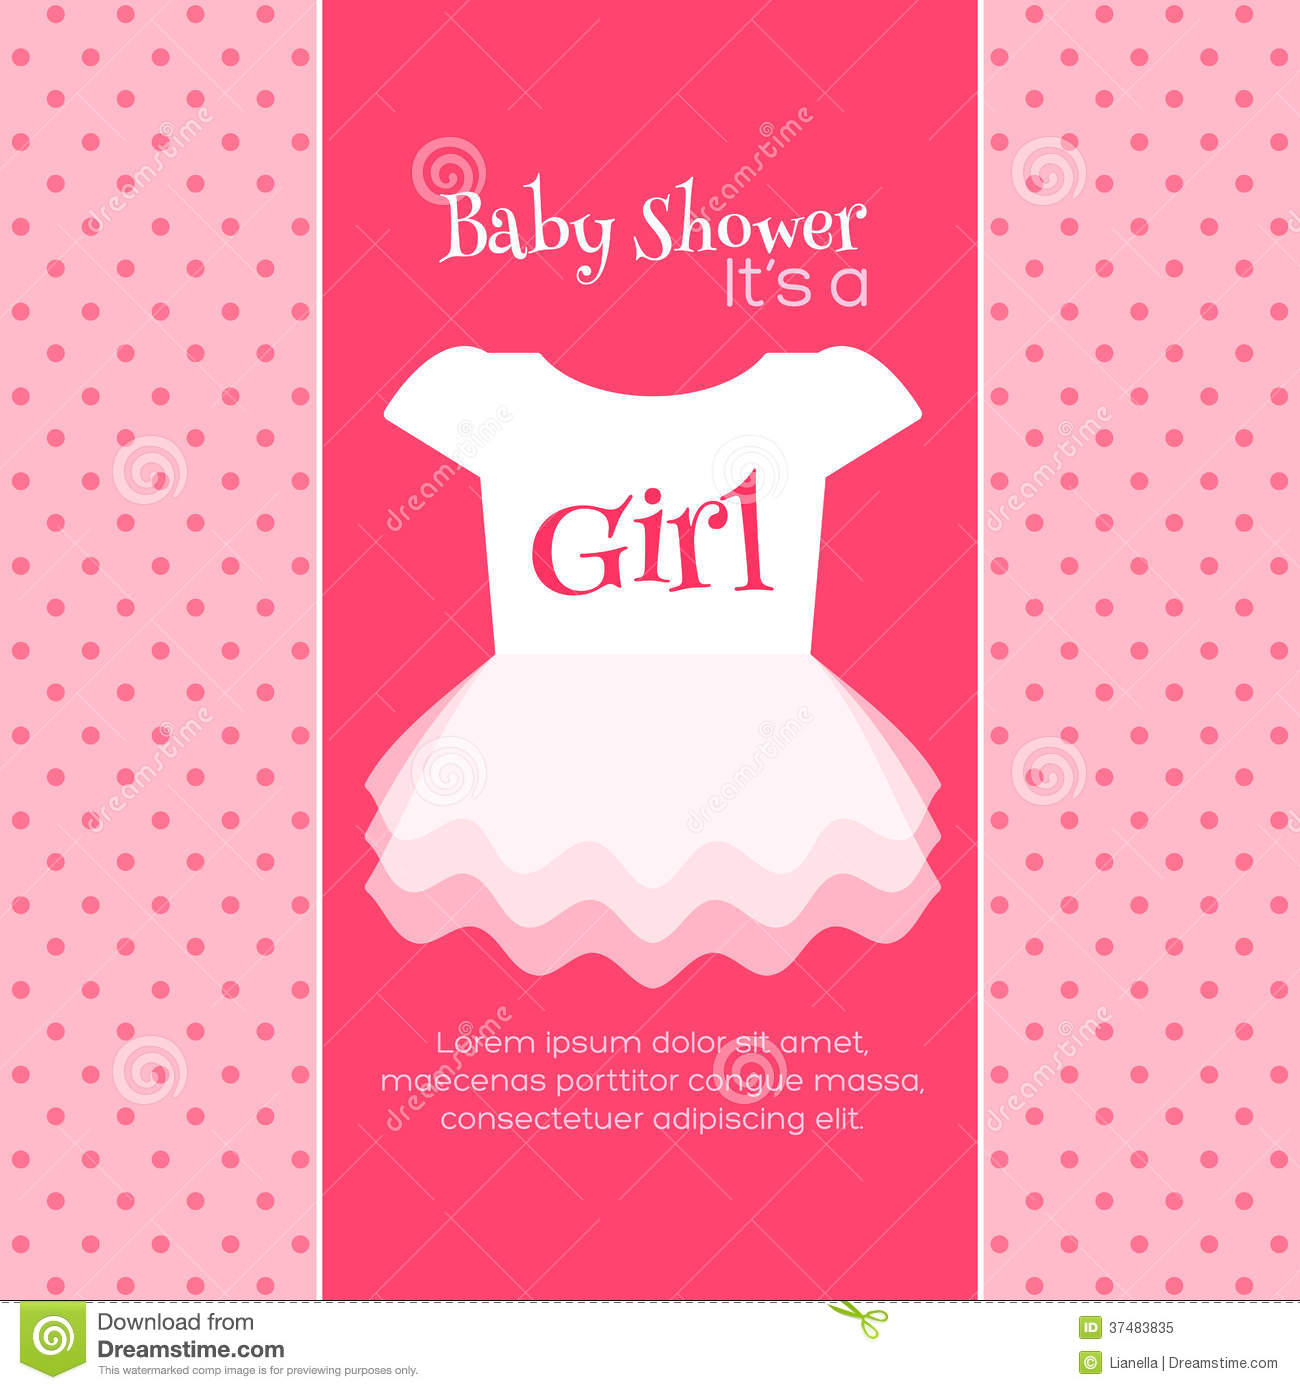 Baby Shower Invitation Template Stock Illustration Illustration Of - Pink baby shower invitation templates